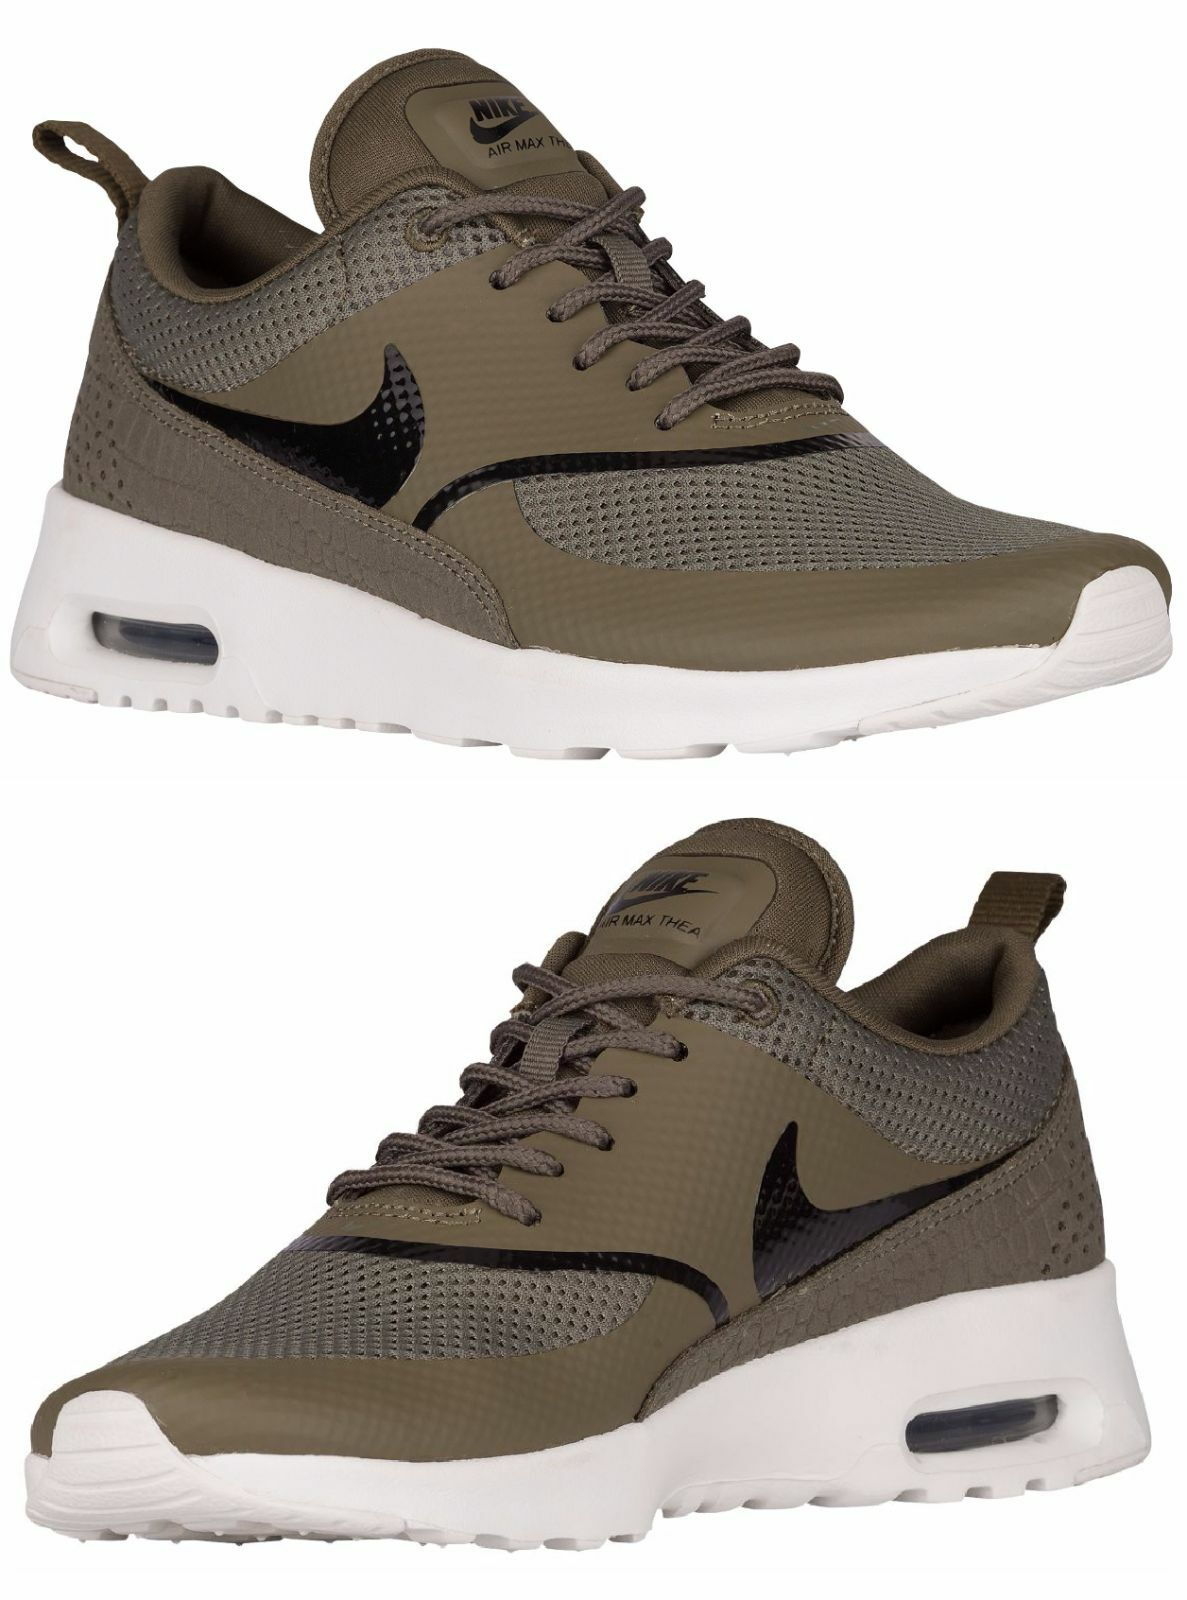 reputable site d34b9 d314e Nike Air Max Thea Mujer Atletismo Mediano Verde Verde Verde Oliva - Summit  Blanco - Negro